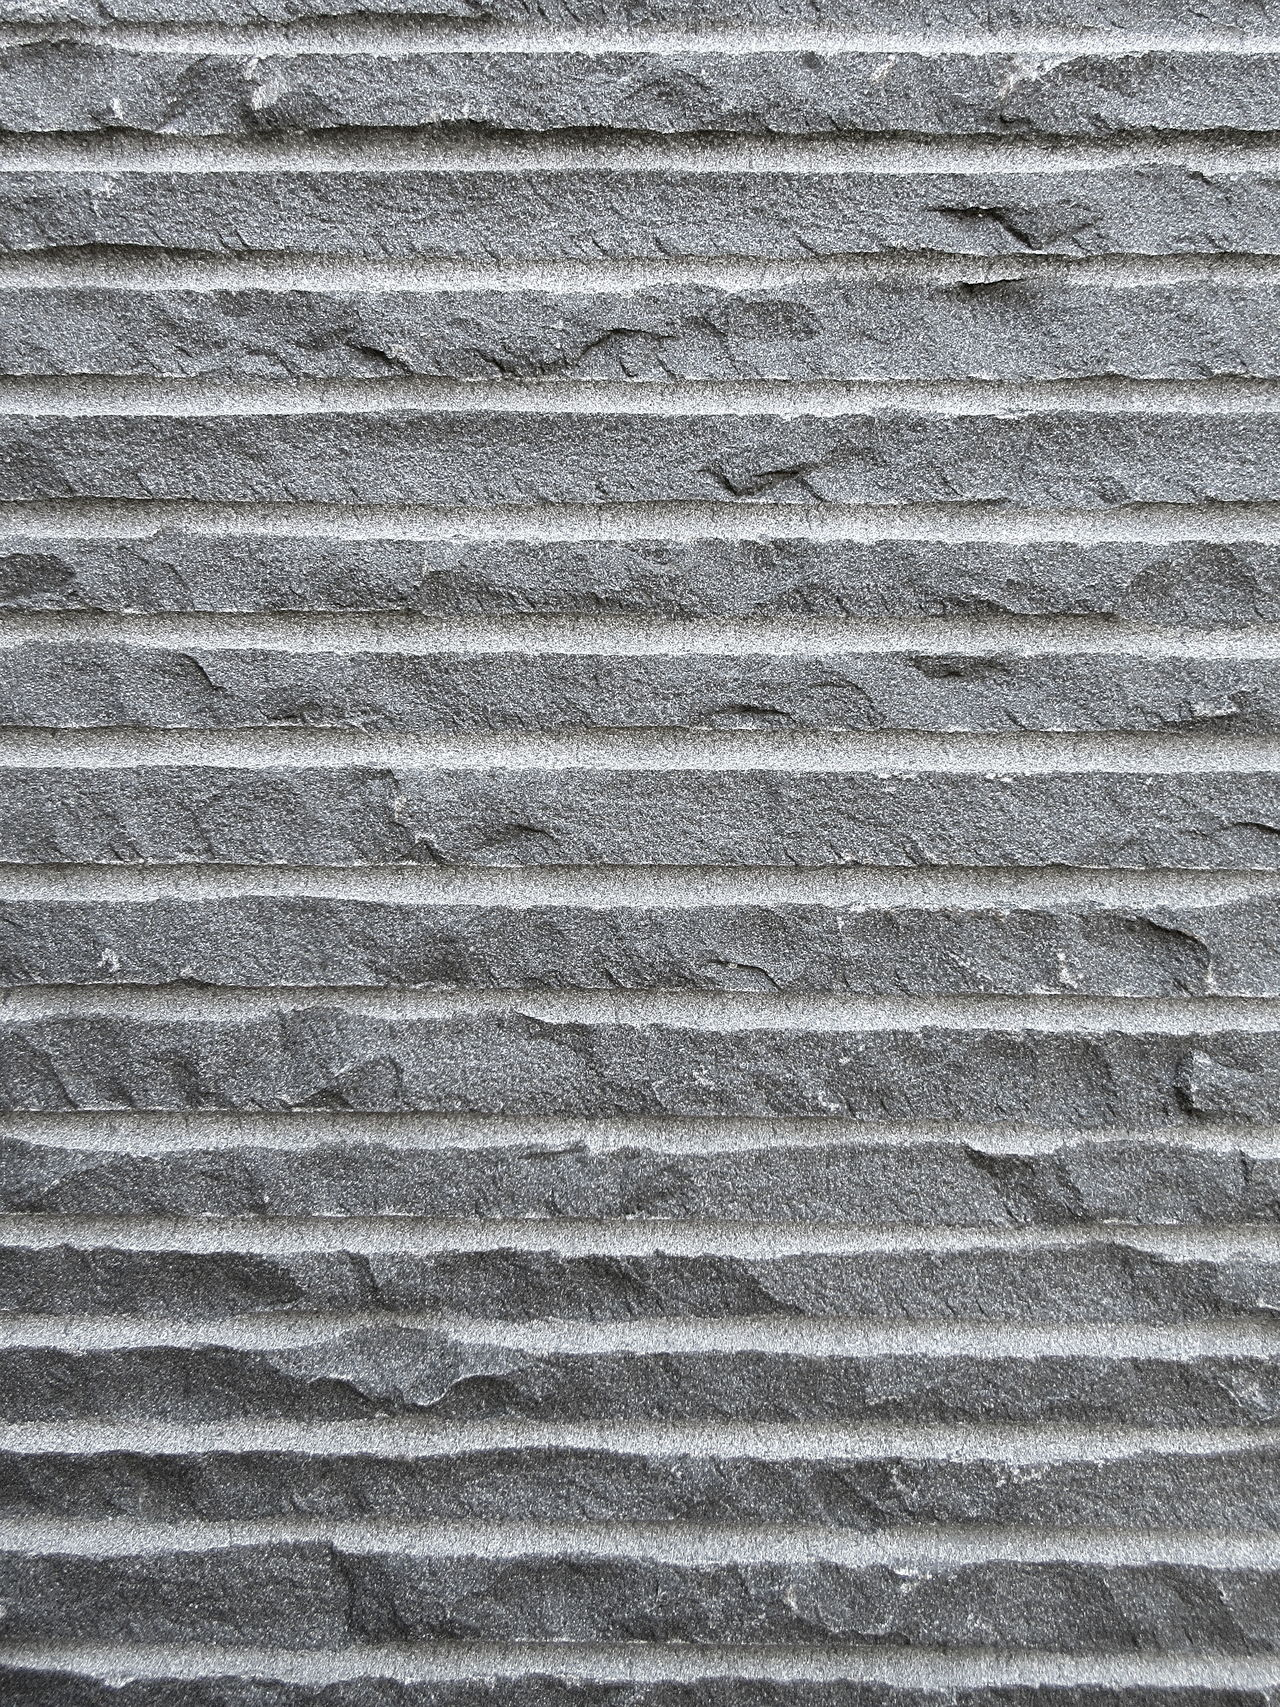 Full frame shot of grey stone background with lines Architecture ArchiTexture Backgrounds Close-up Day Full Frame Grey Lines Monochrome No People Outdoors Pattern Sculpted Stone Stripes Pattern Textured  Textures And Surfaces